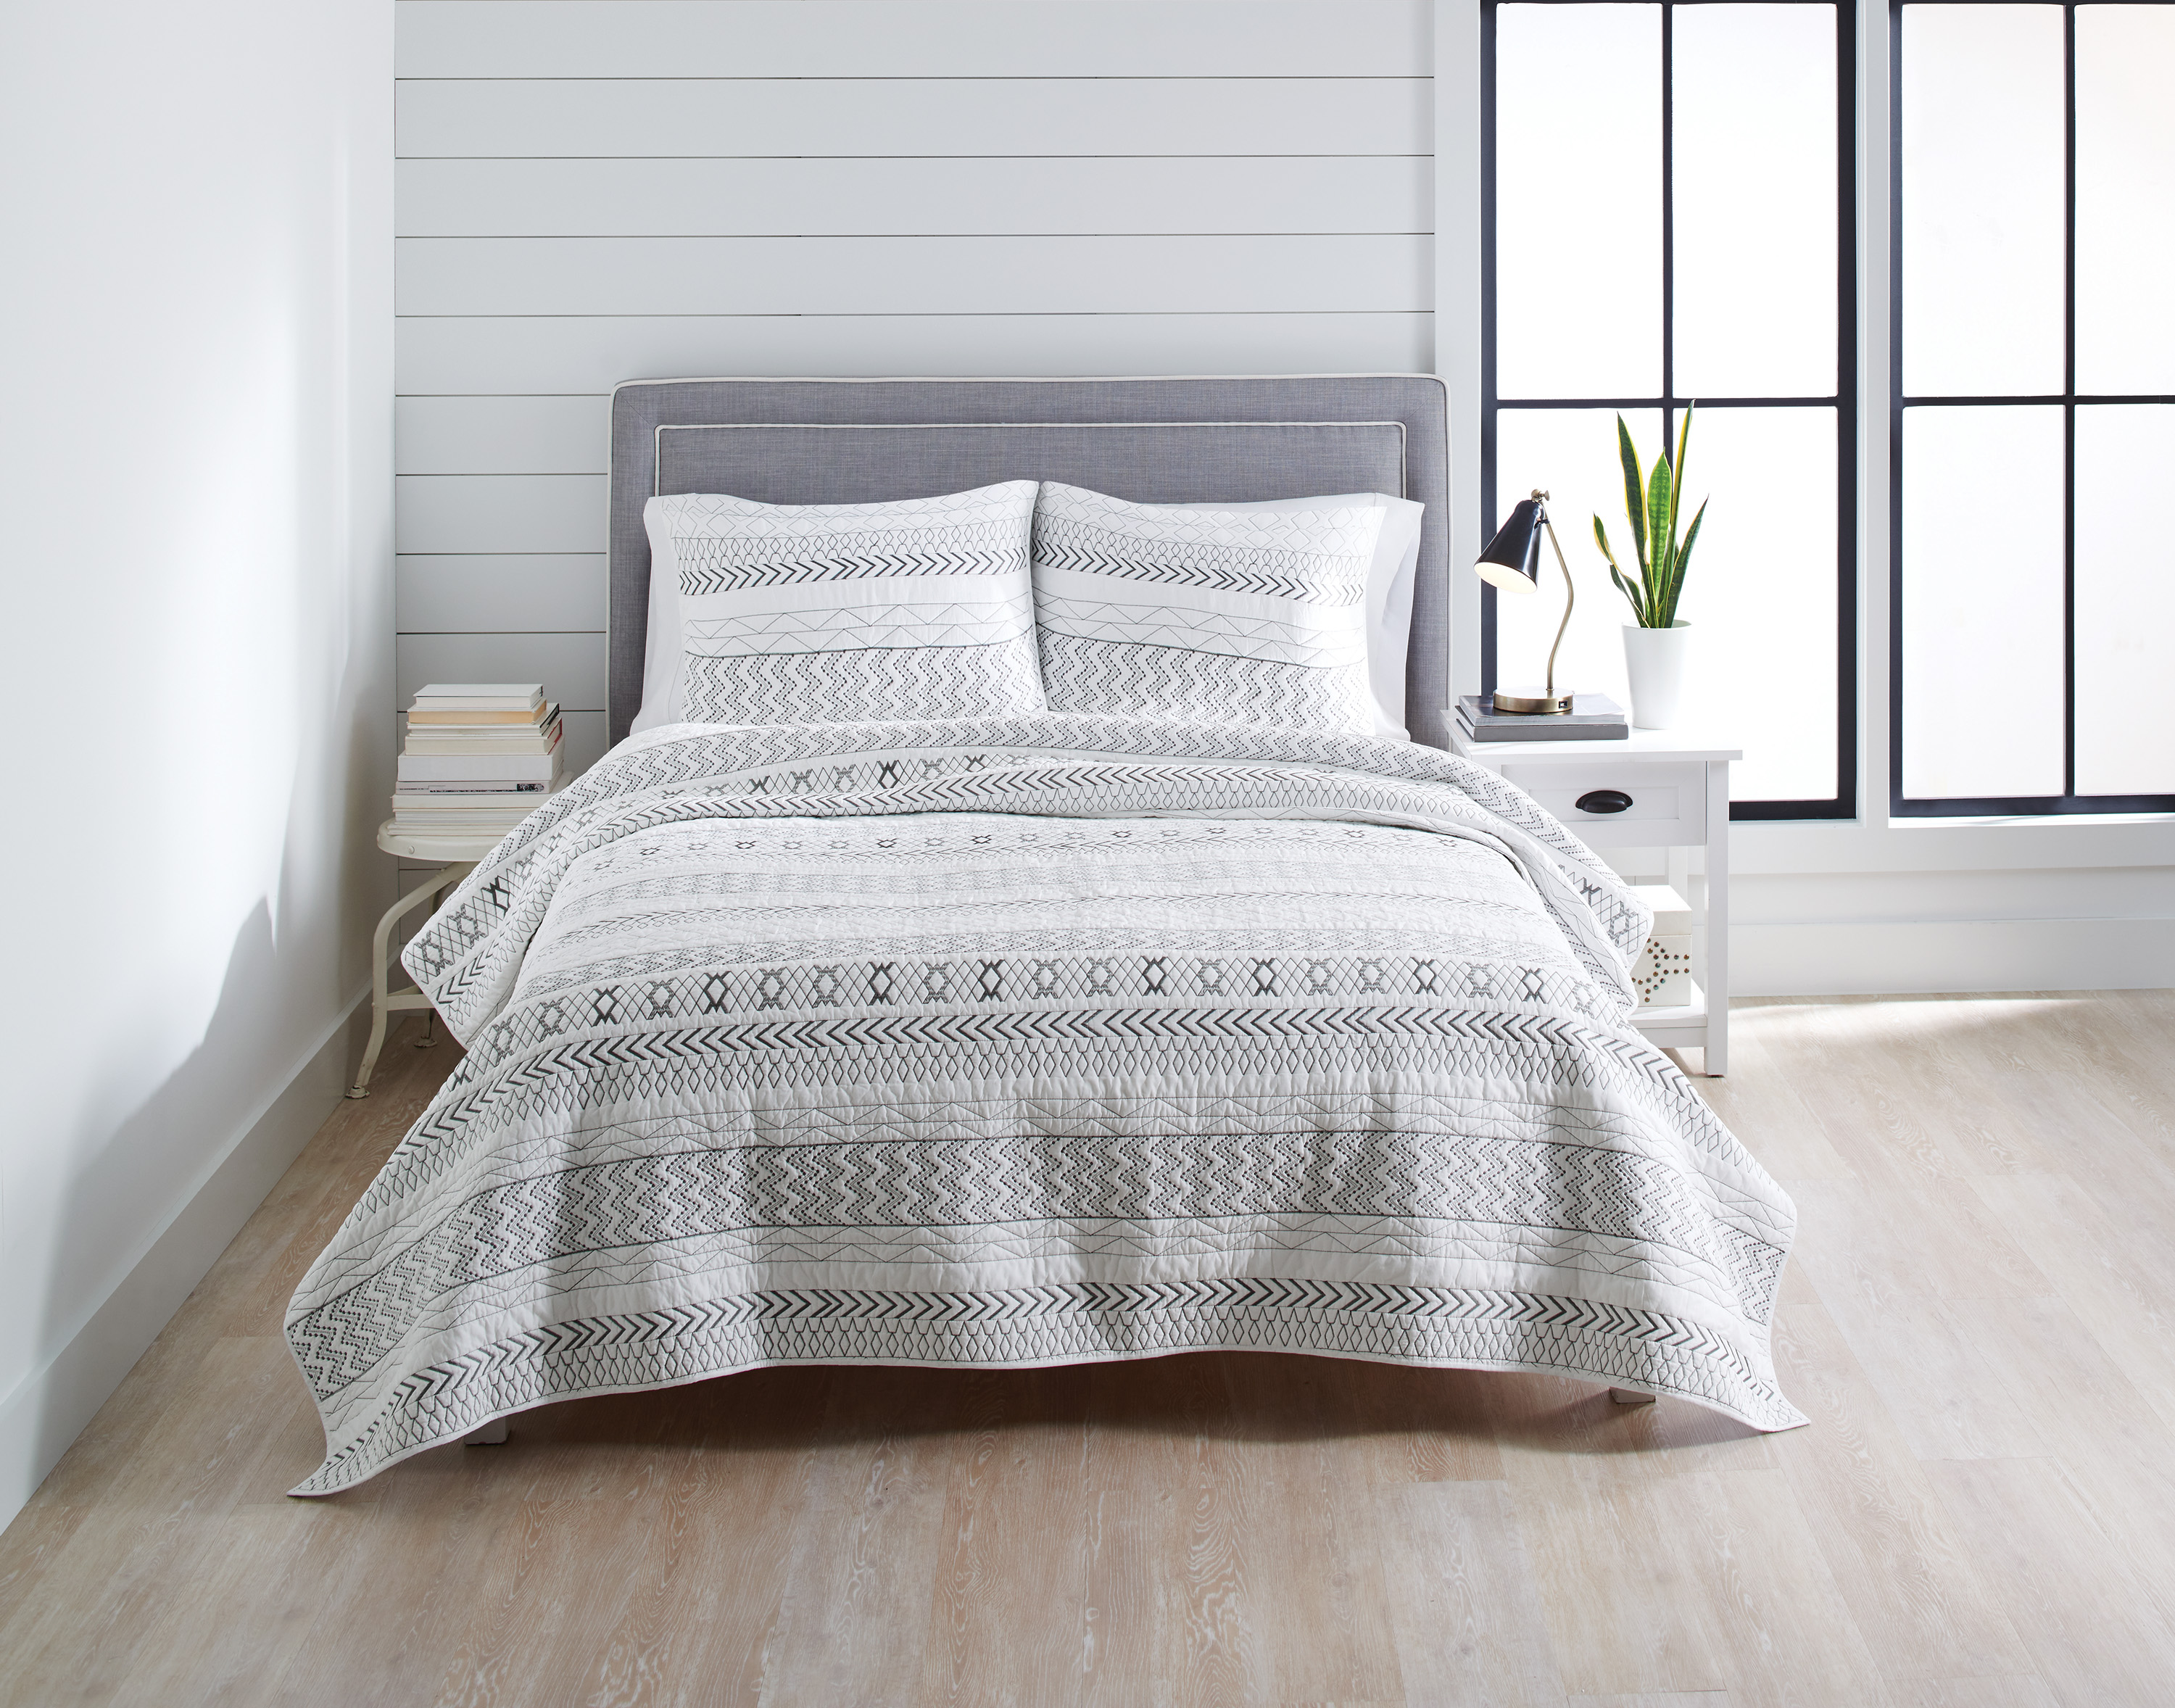 Better Homes and Gardens Embroidered Stripe Quilt by Heifi Gorgeous Textile Products